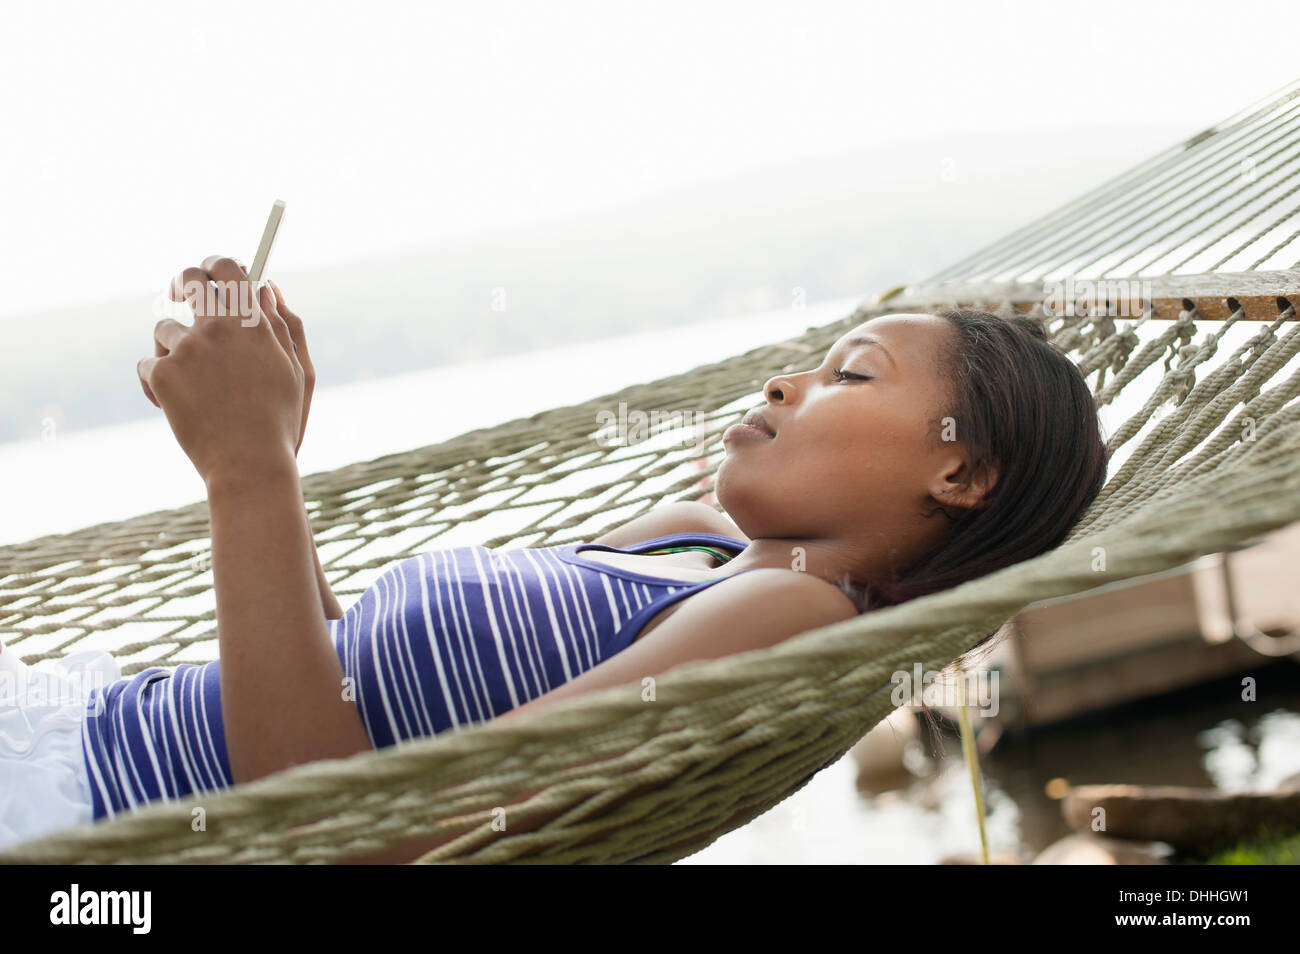 Young woman lying in hammock using cell phone - Stock Image